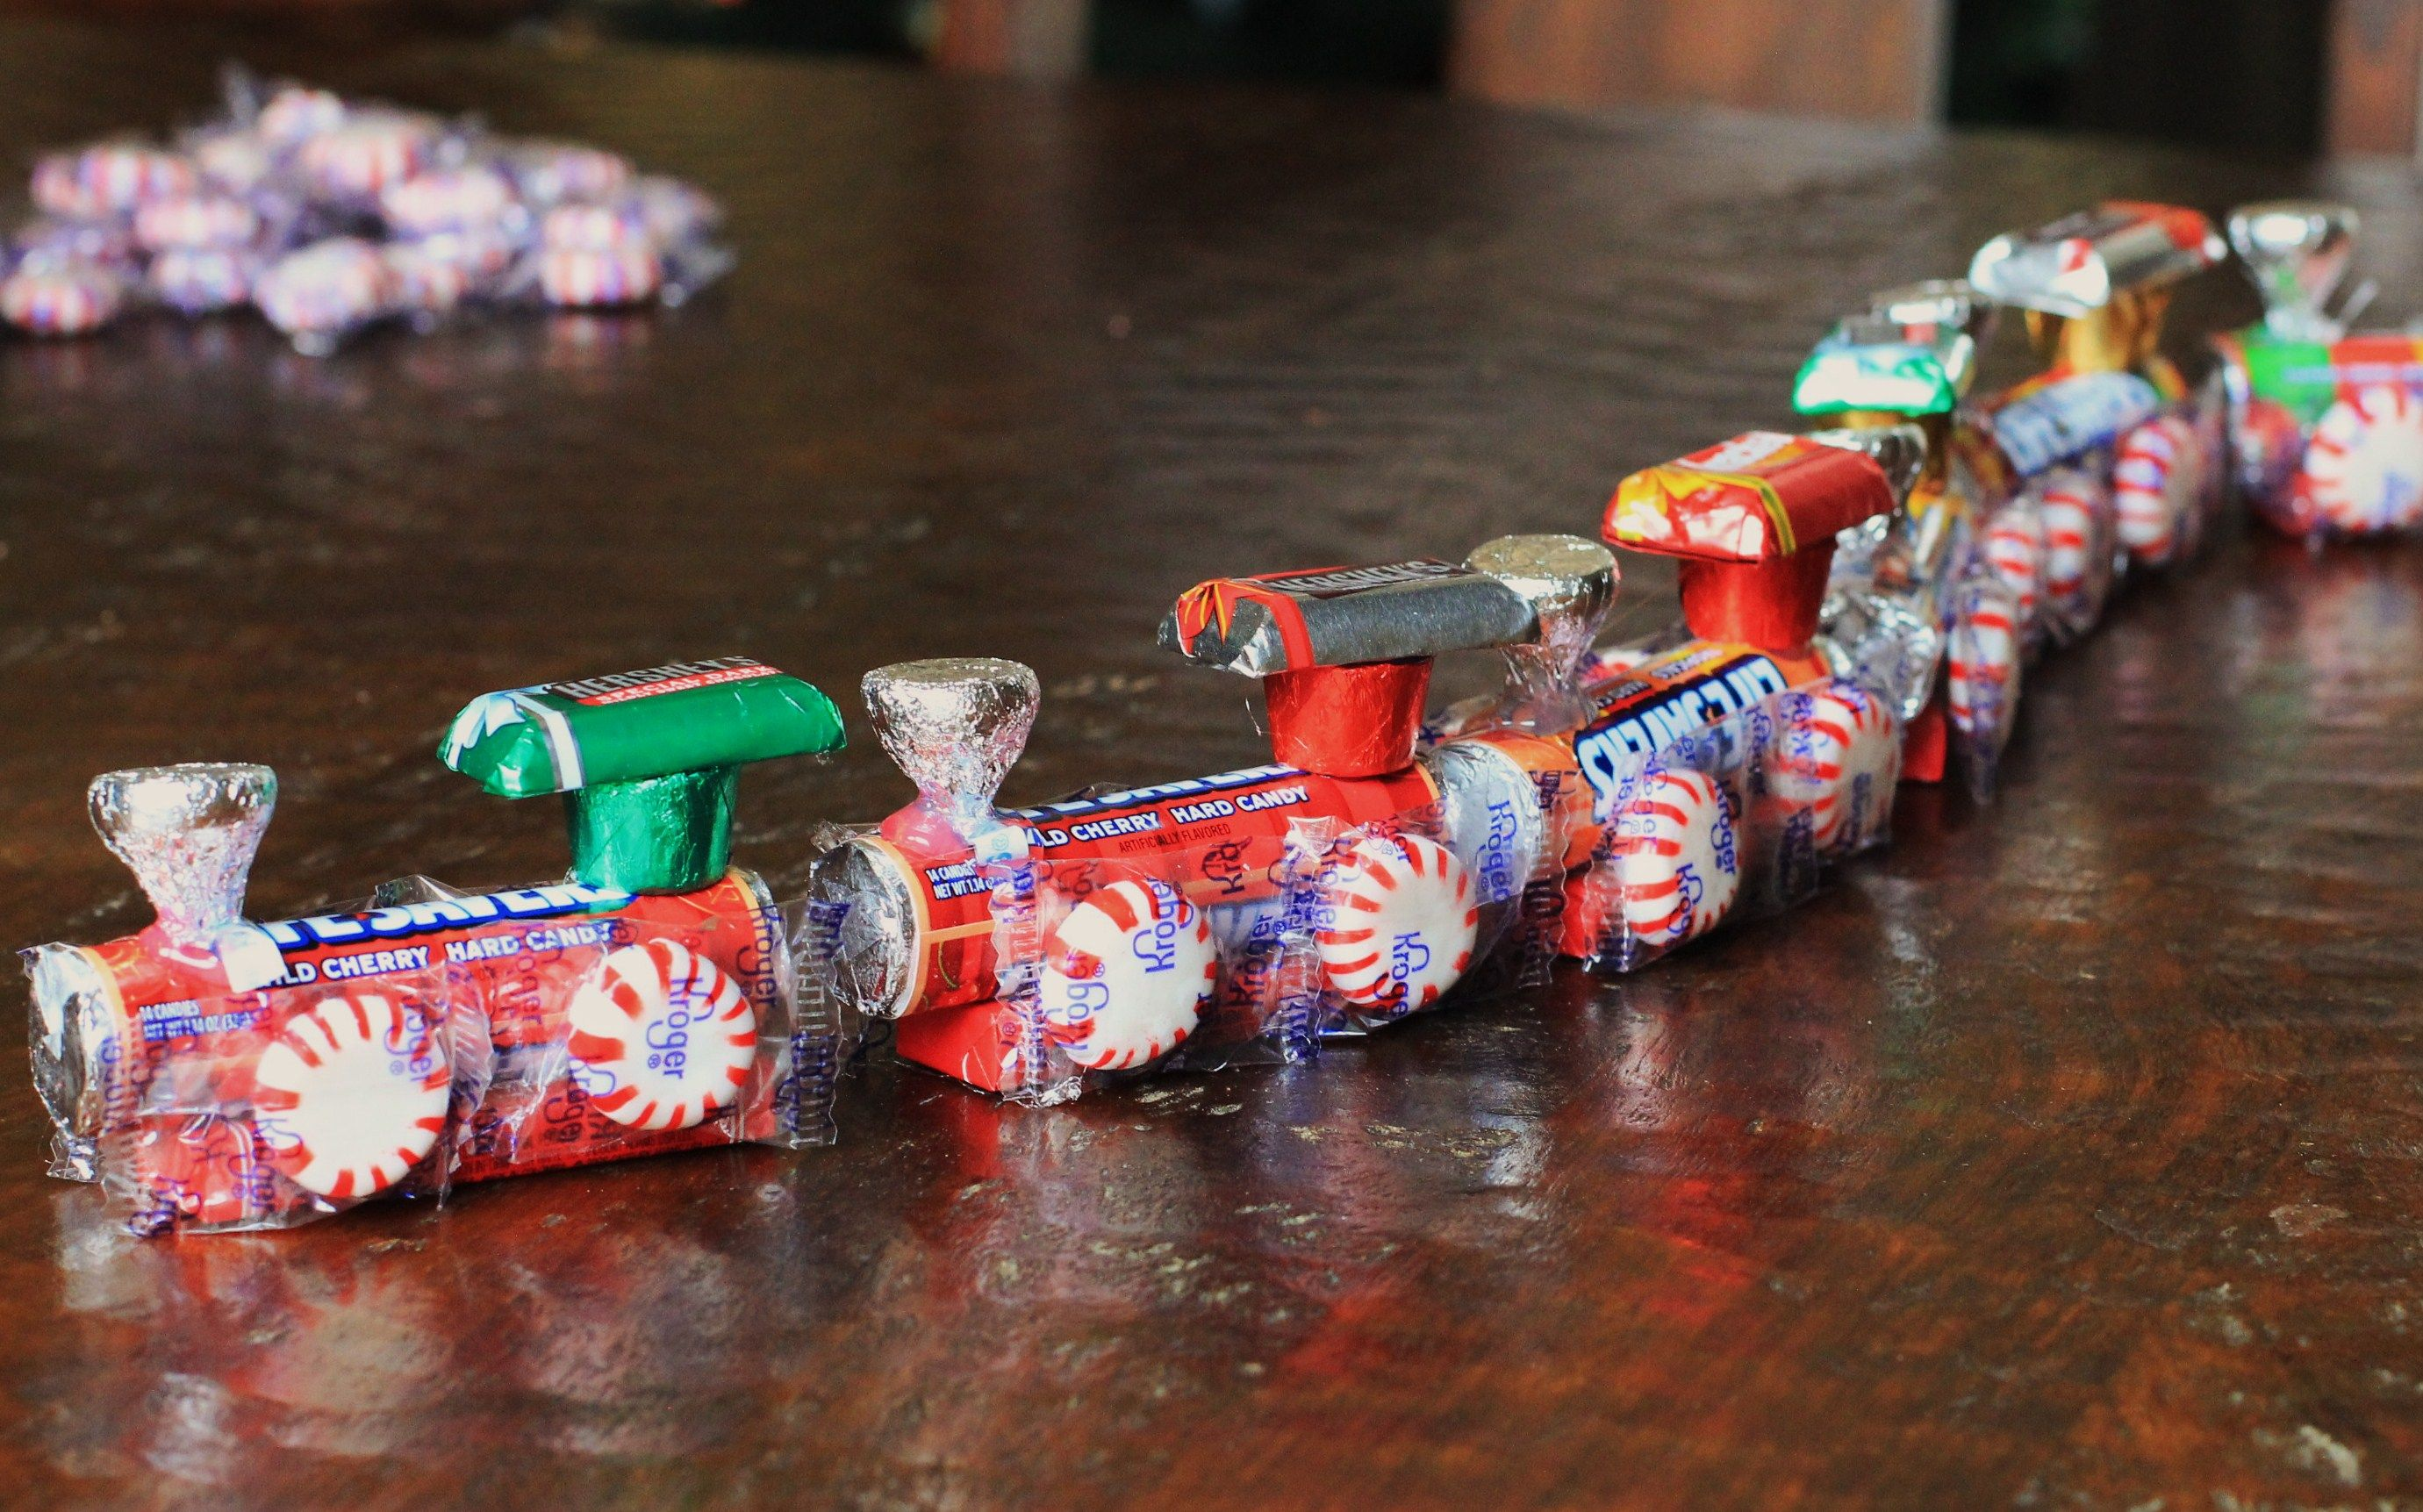 5 Days Of Frugal Christmas Ideas How To Make A Candy Train Candy Train Easy Kids Christmas Frugal Christmas